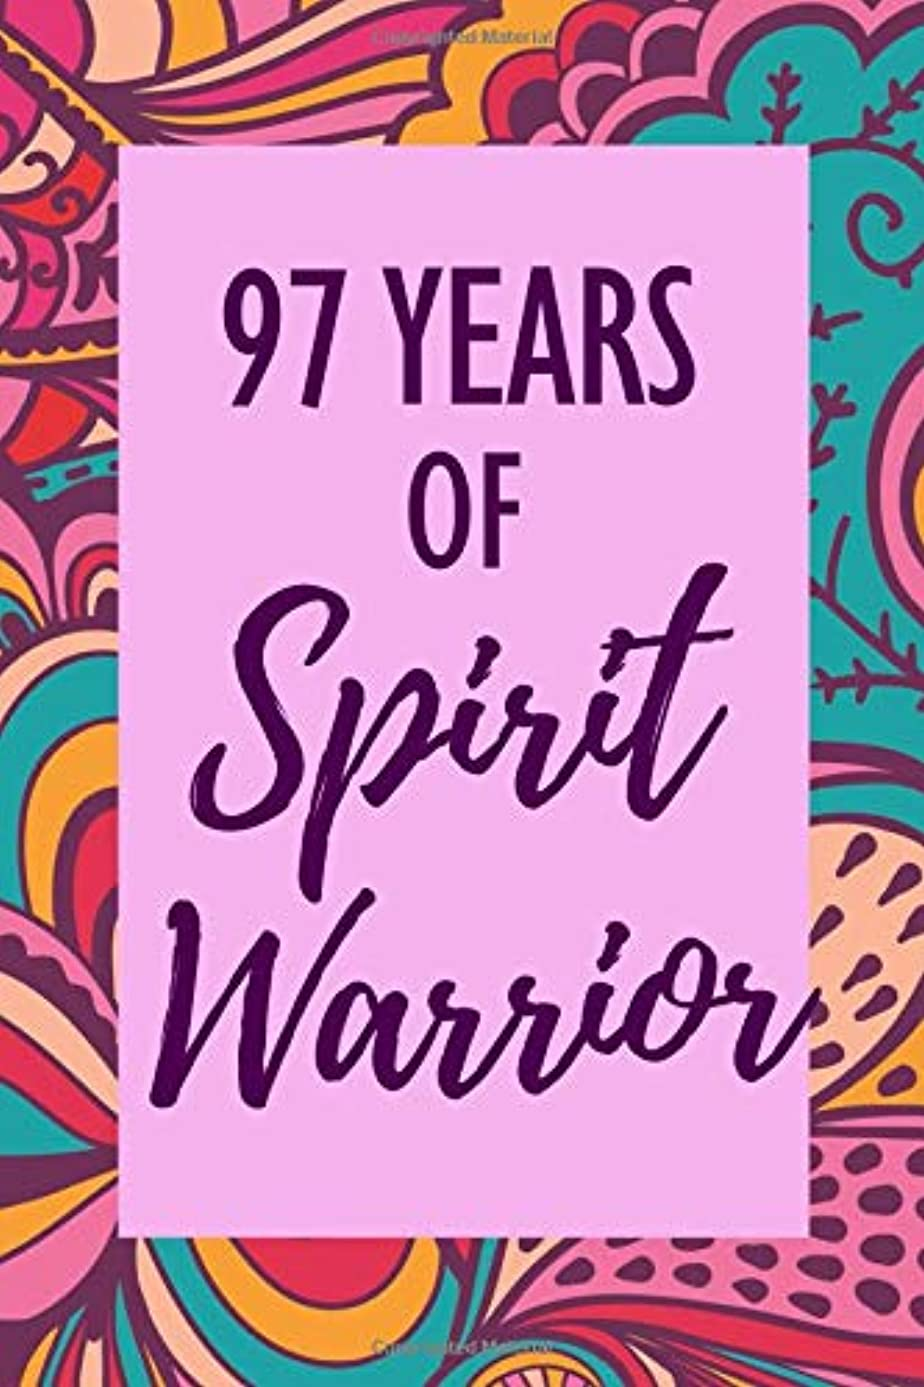 97 Years of Spirit Warrior: 97th Birthday - Anti Anxiety Journal - Guided Notebook Diary - Wellness & Confidence for Girls, Teens & Women - To Write In with Prompts